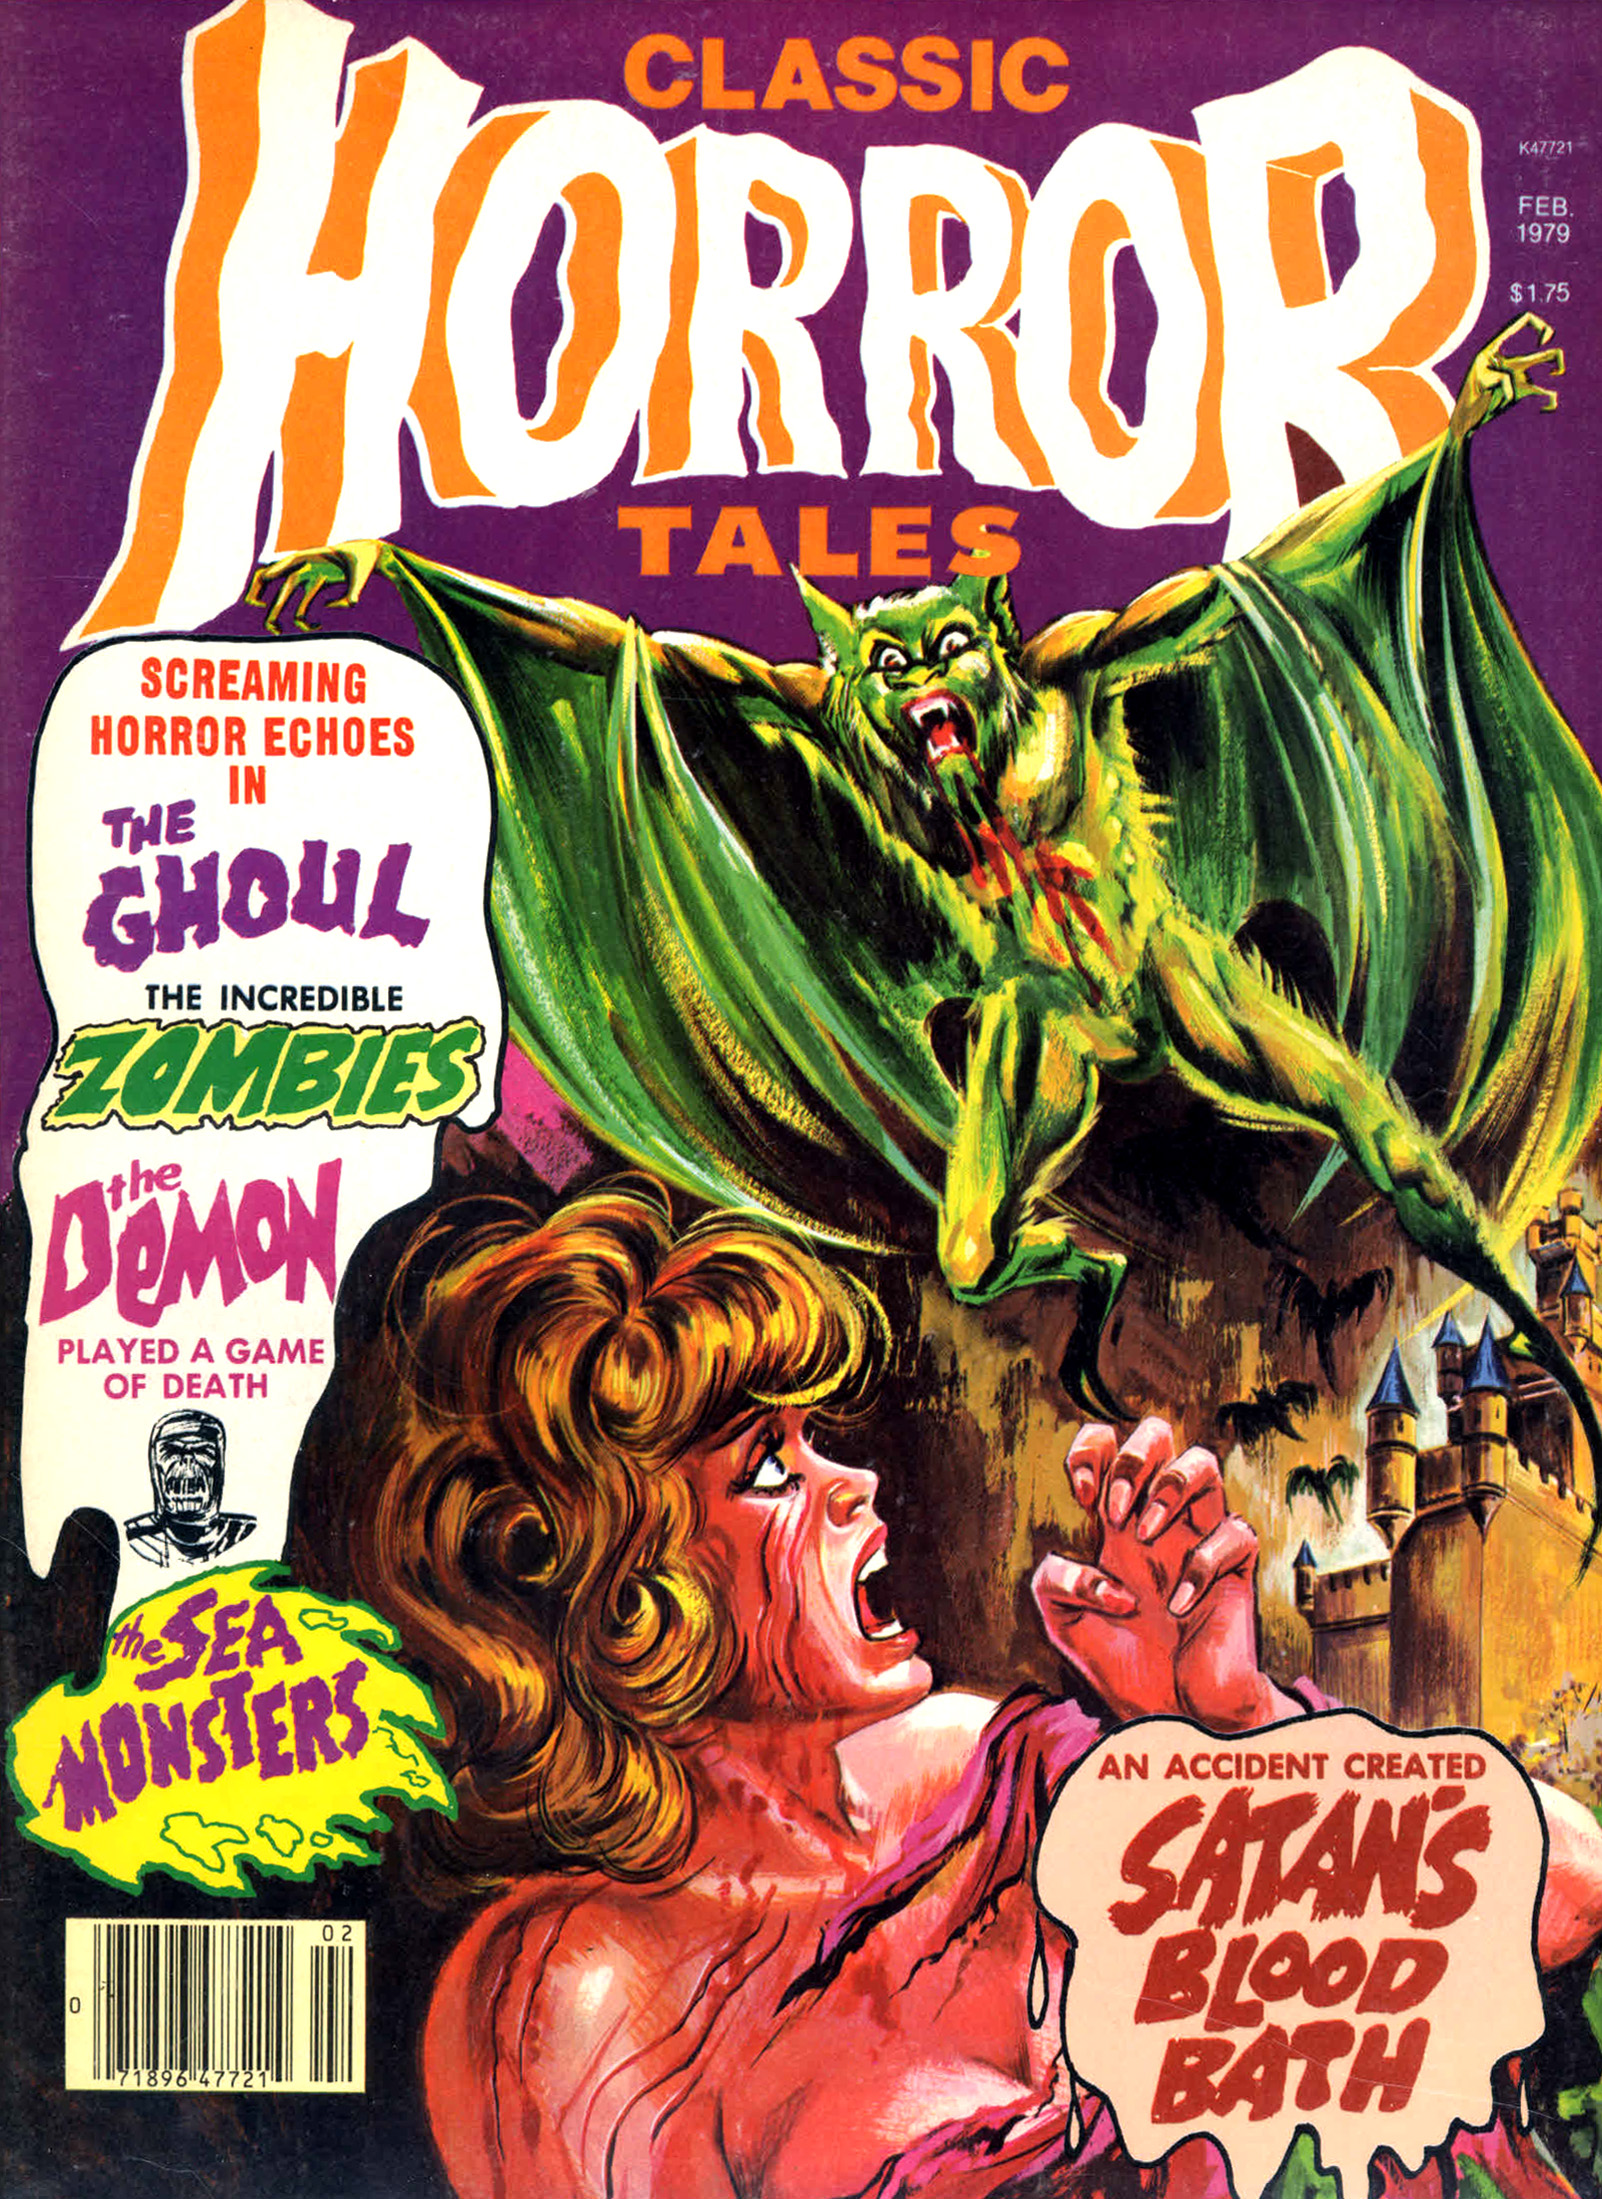 Horror Tales - Vol.10 #1 (Eerie Publications, 1979)